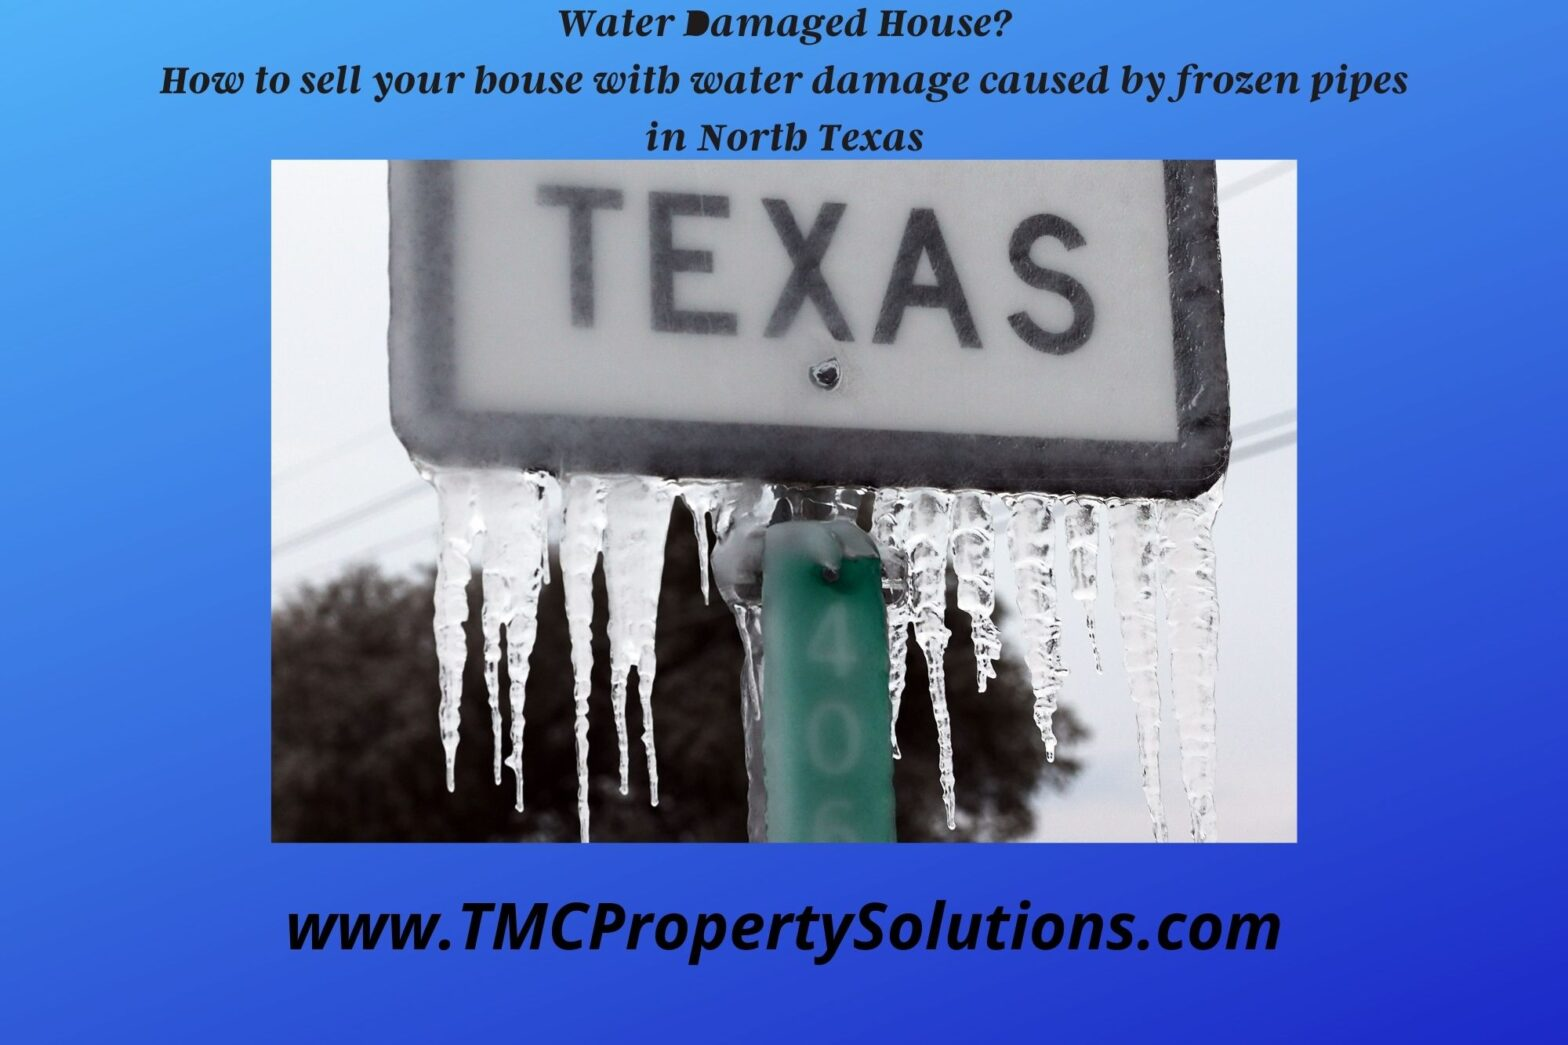 sell your house with Water Damage